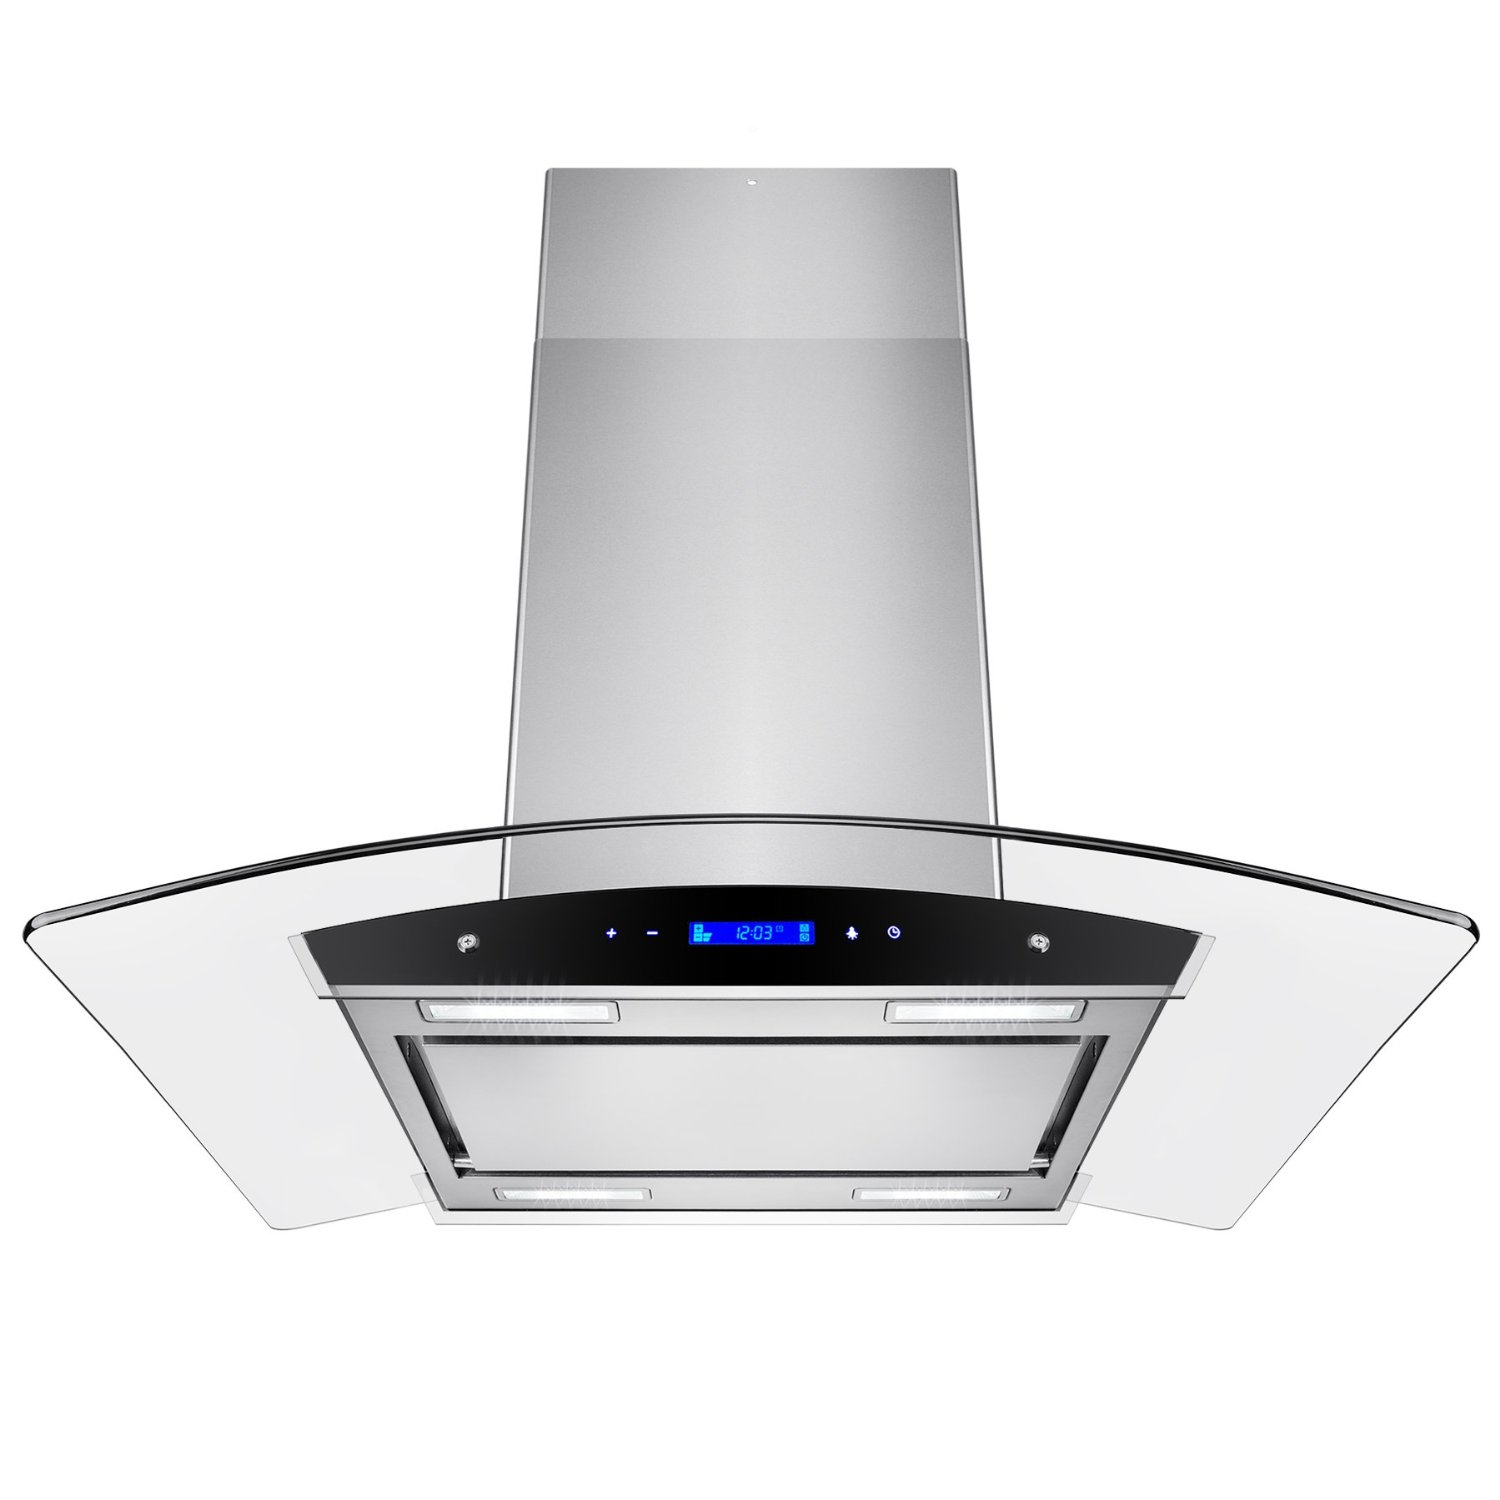 golden vantage island mount kitchen hood?resize=370%2C297&ssl=1 how to fix noisy range hood in 6 easy steps (broan range hood)  at webbmarketing.co